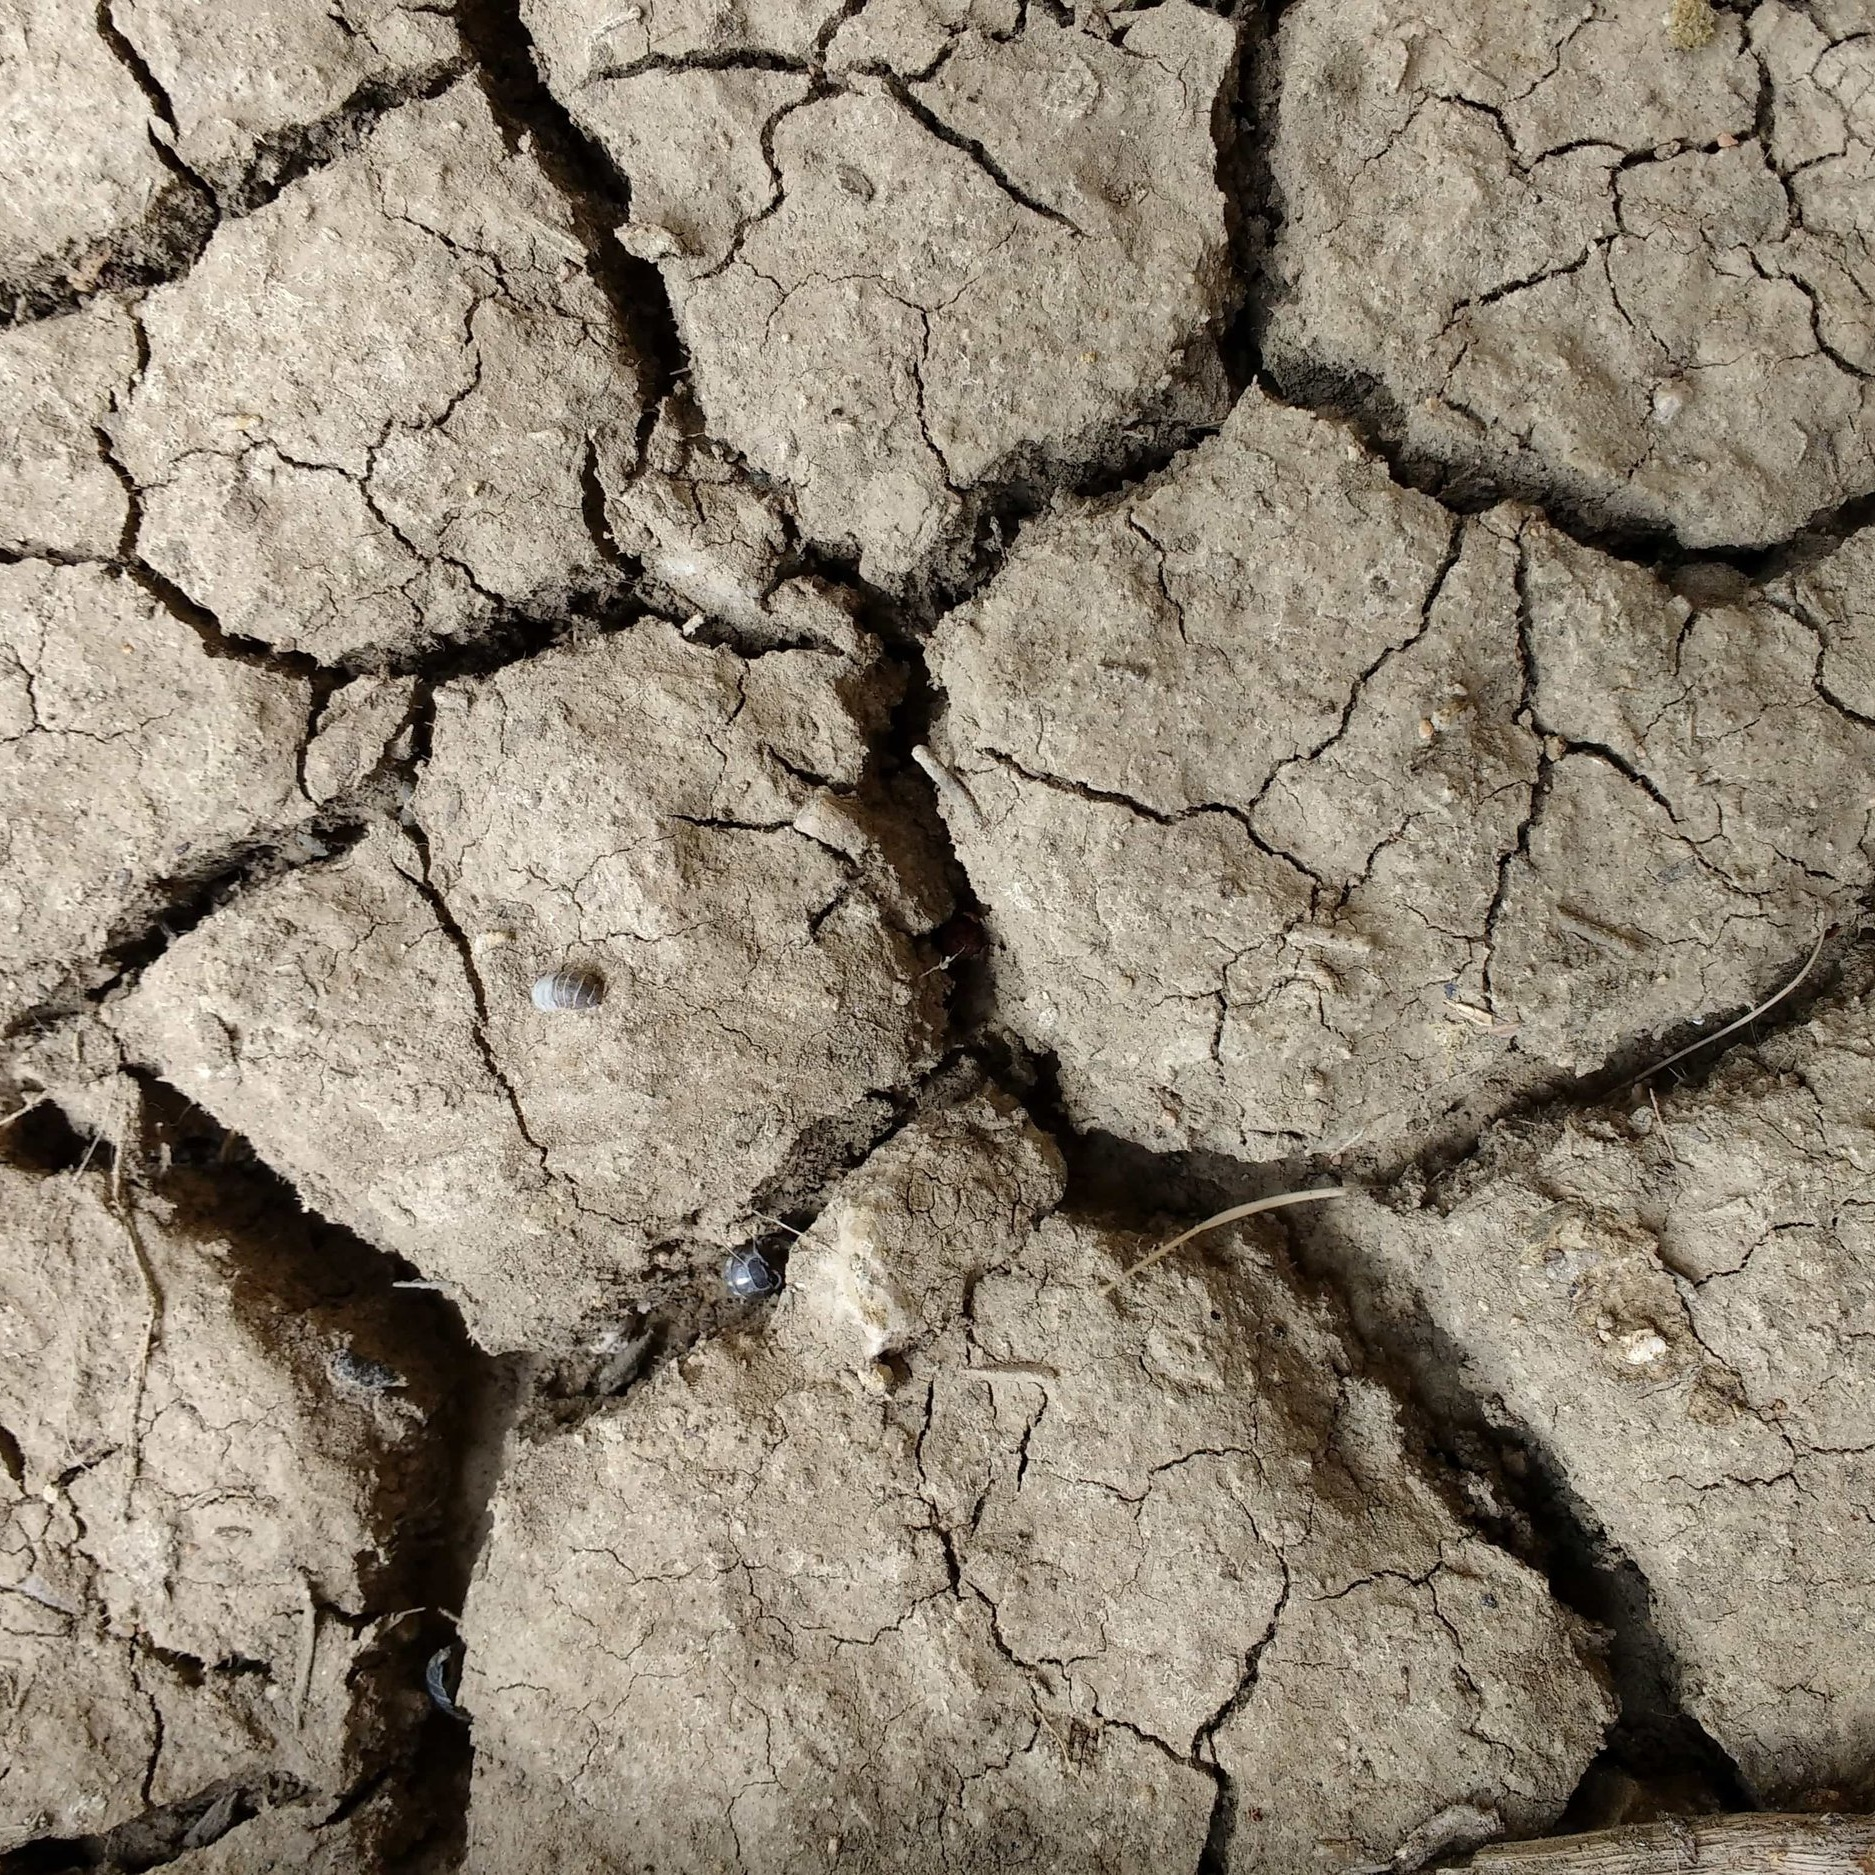 Frequent Droughts - More irregular precipitation and hotter temperatures as a result of climate change will combine to cause more frequent and more intense summertime droughts. These droughts could threaten Delaware's agricultural economy, which relies heavily on irrigation.